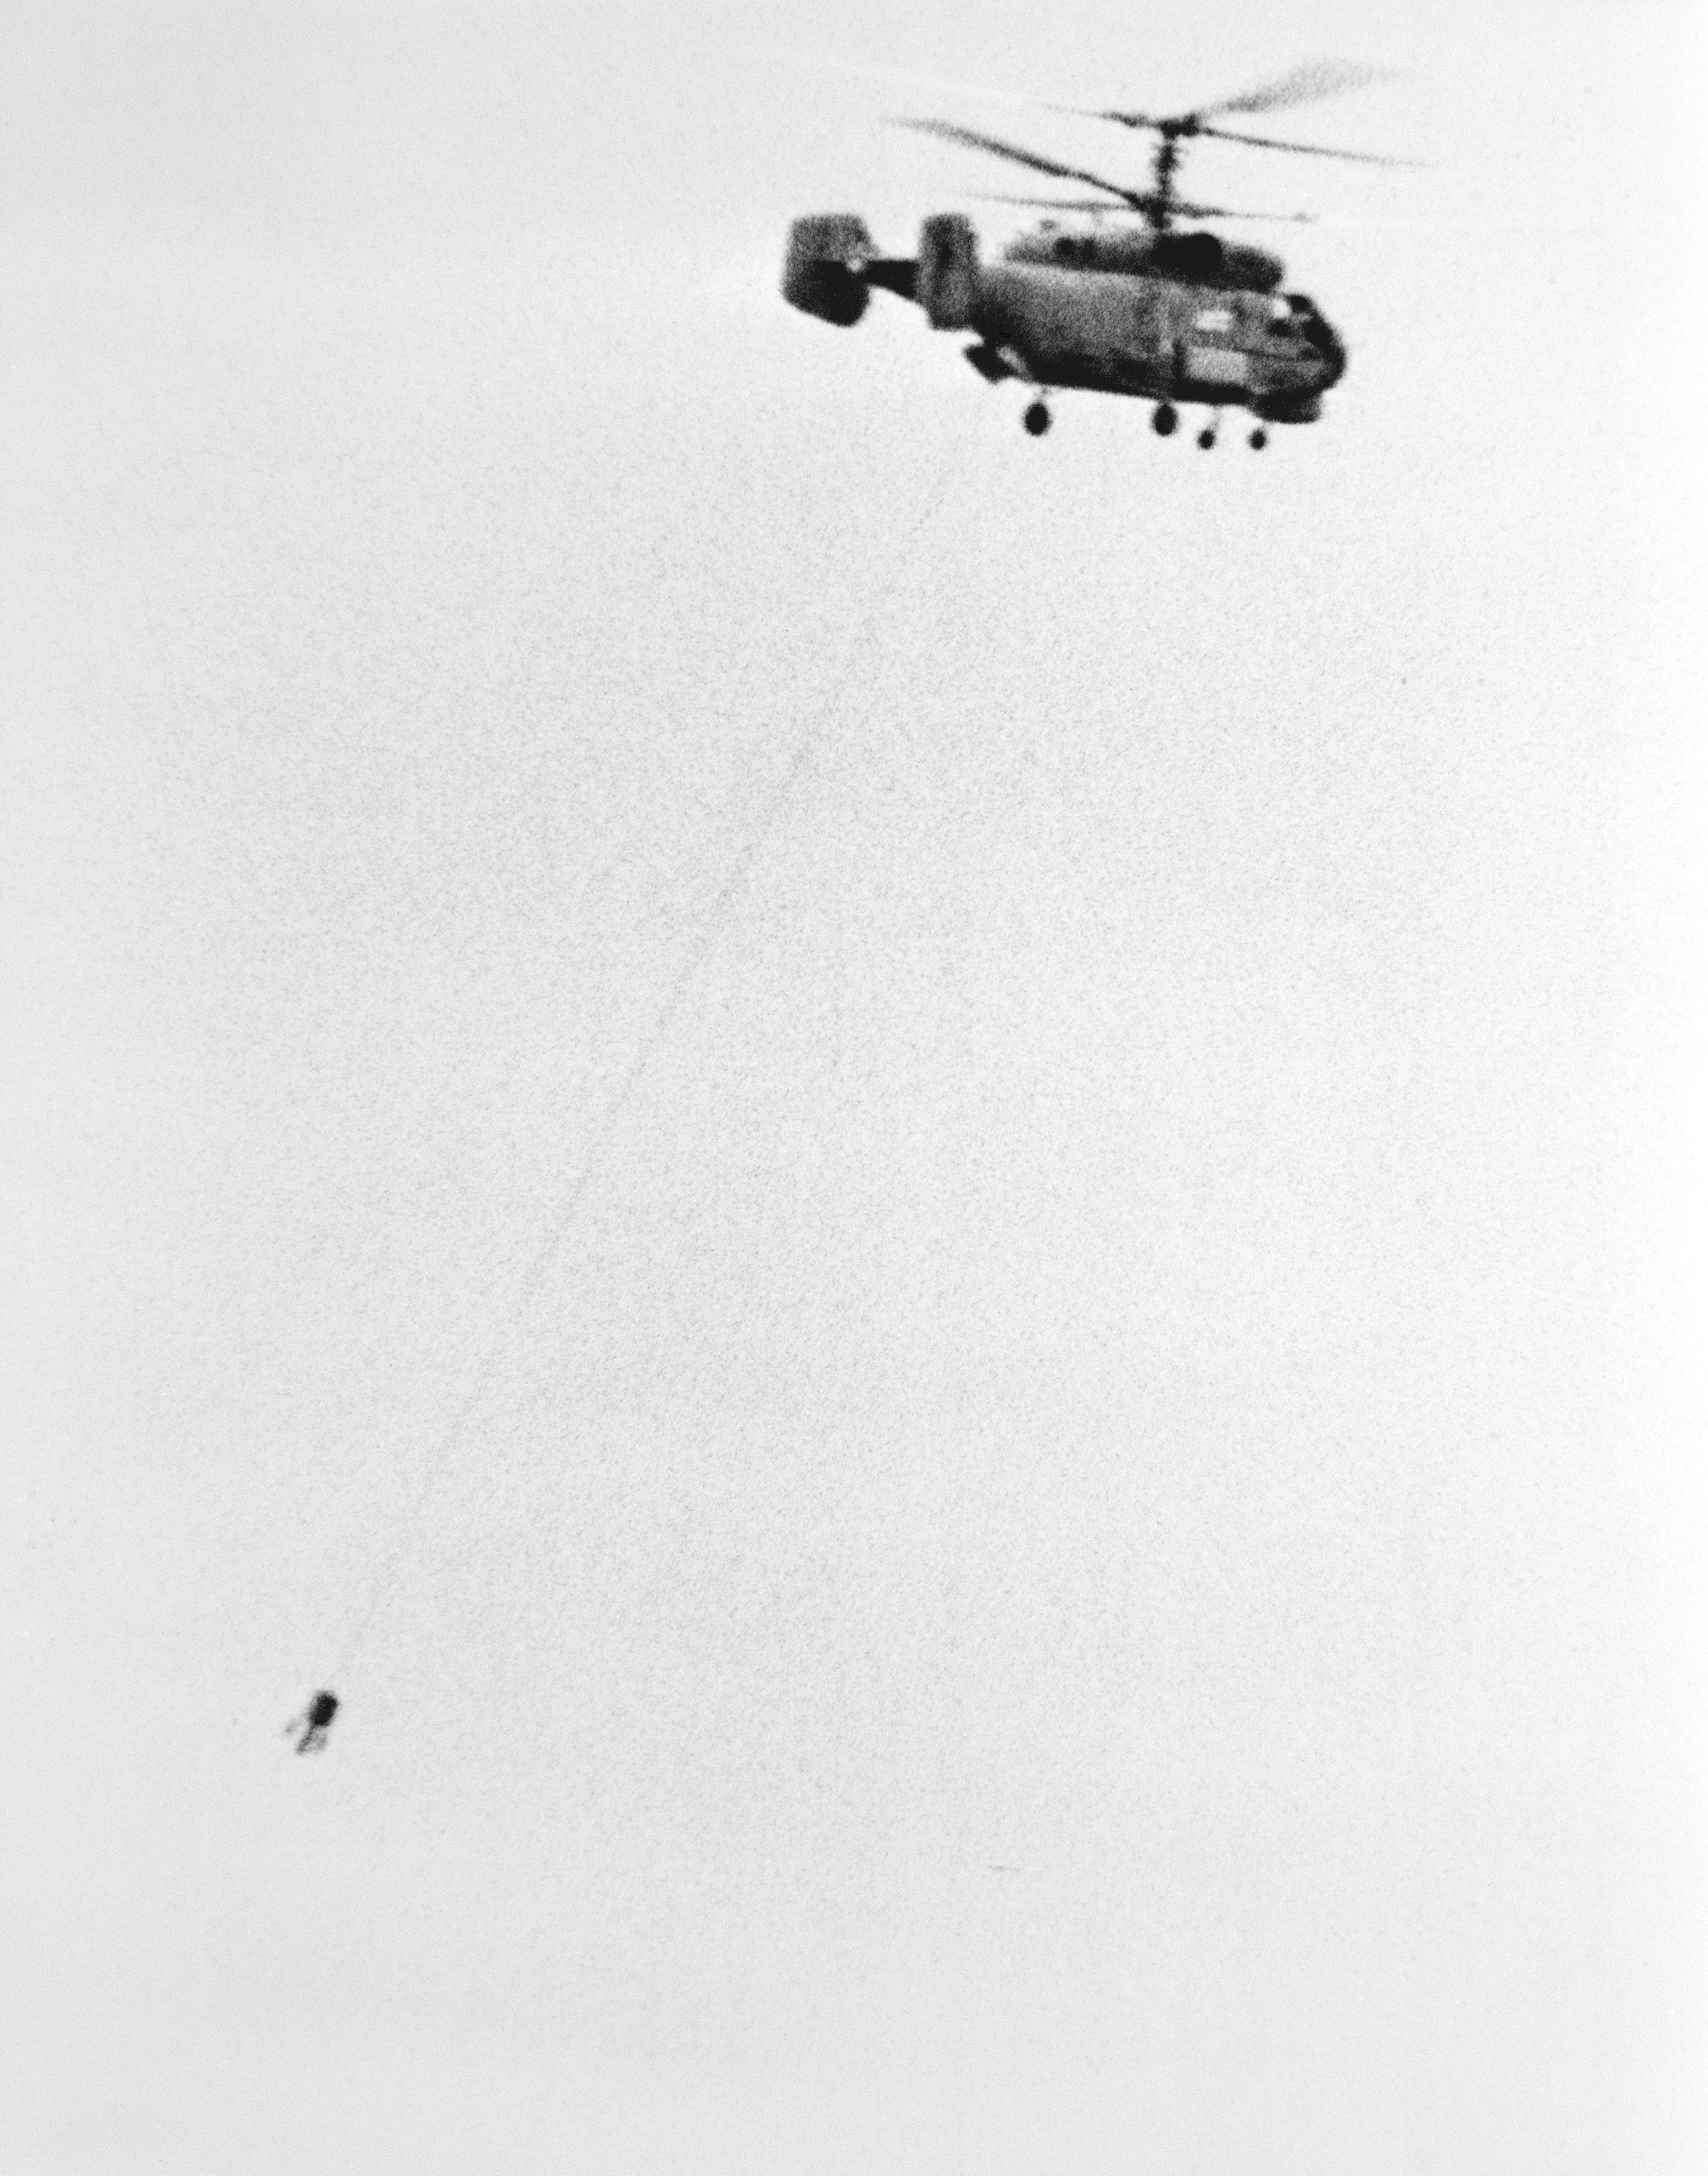 A Soviet Ka-27 Helix-A anti-submarine warfare helicopter in flight with dipping sonar deployed